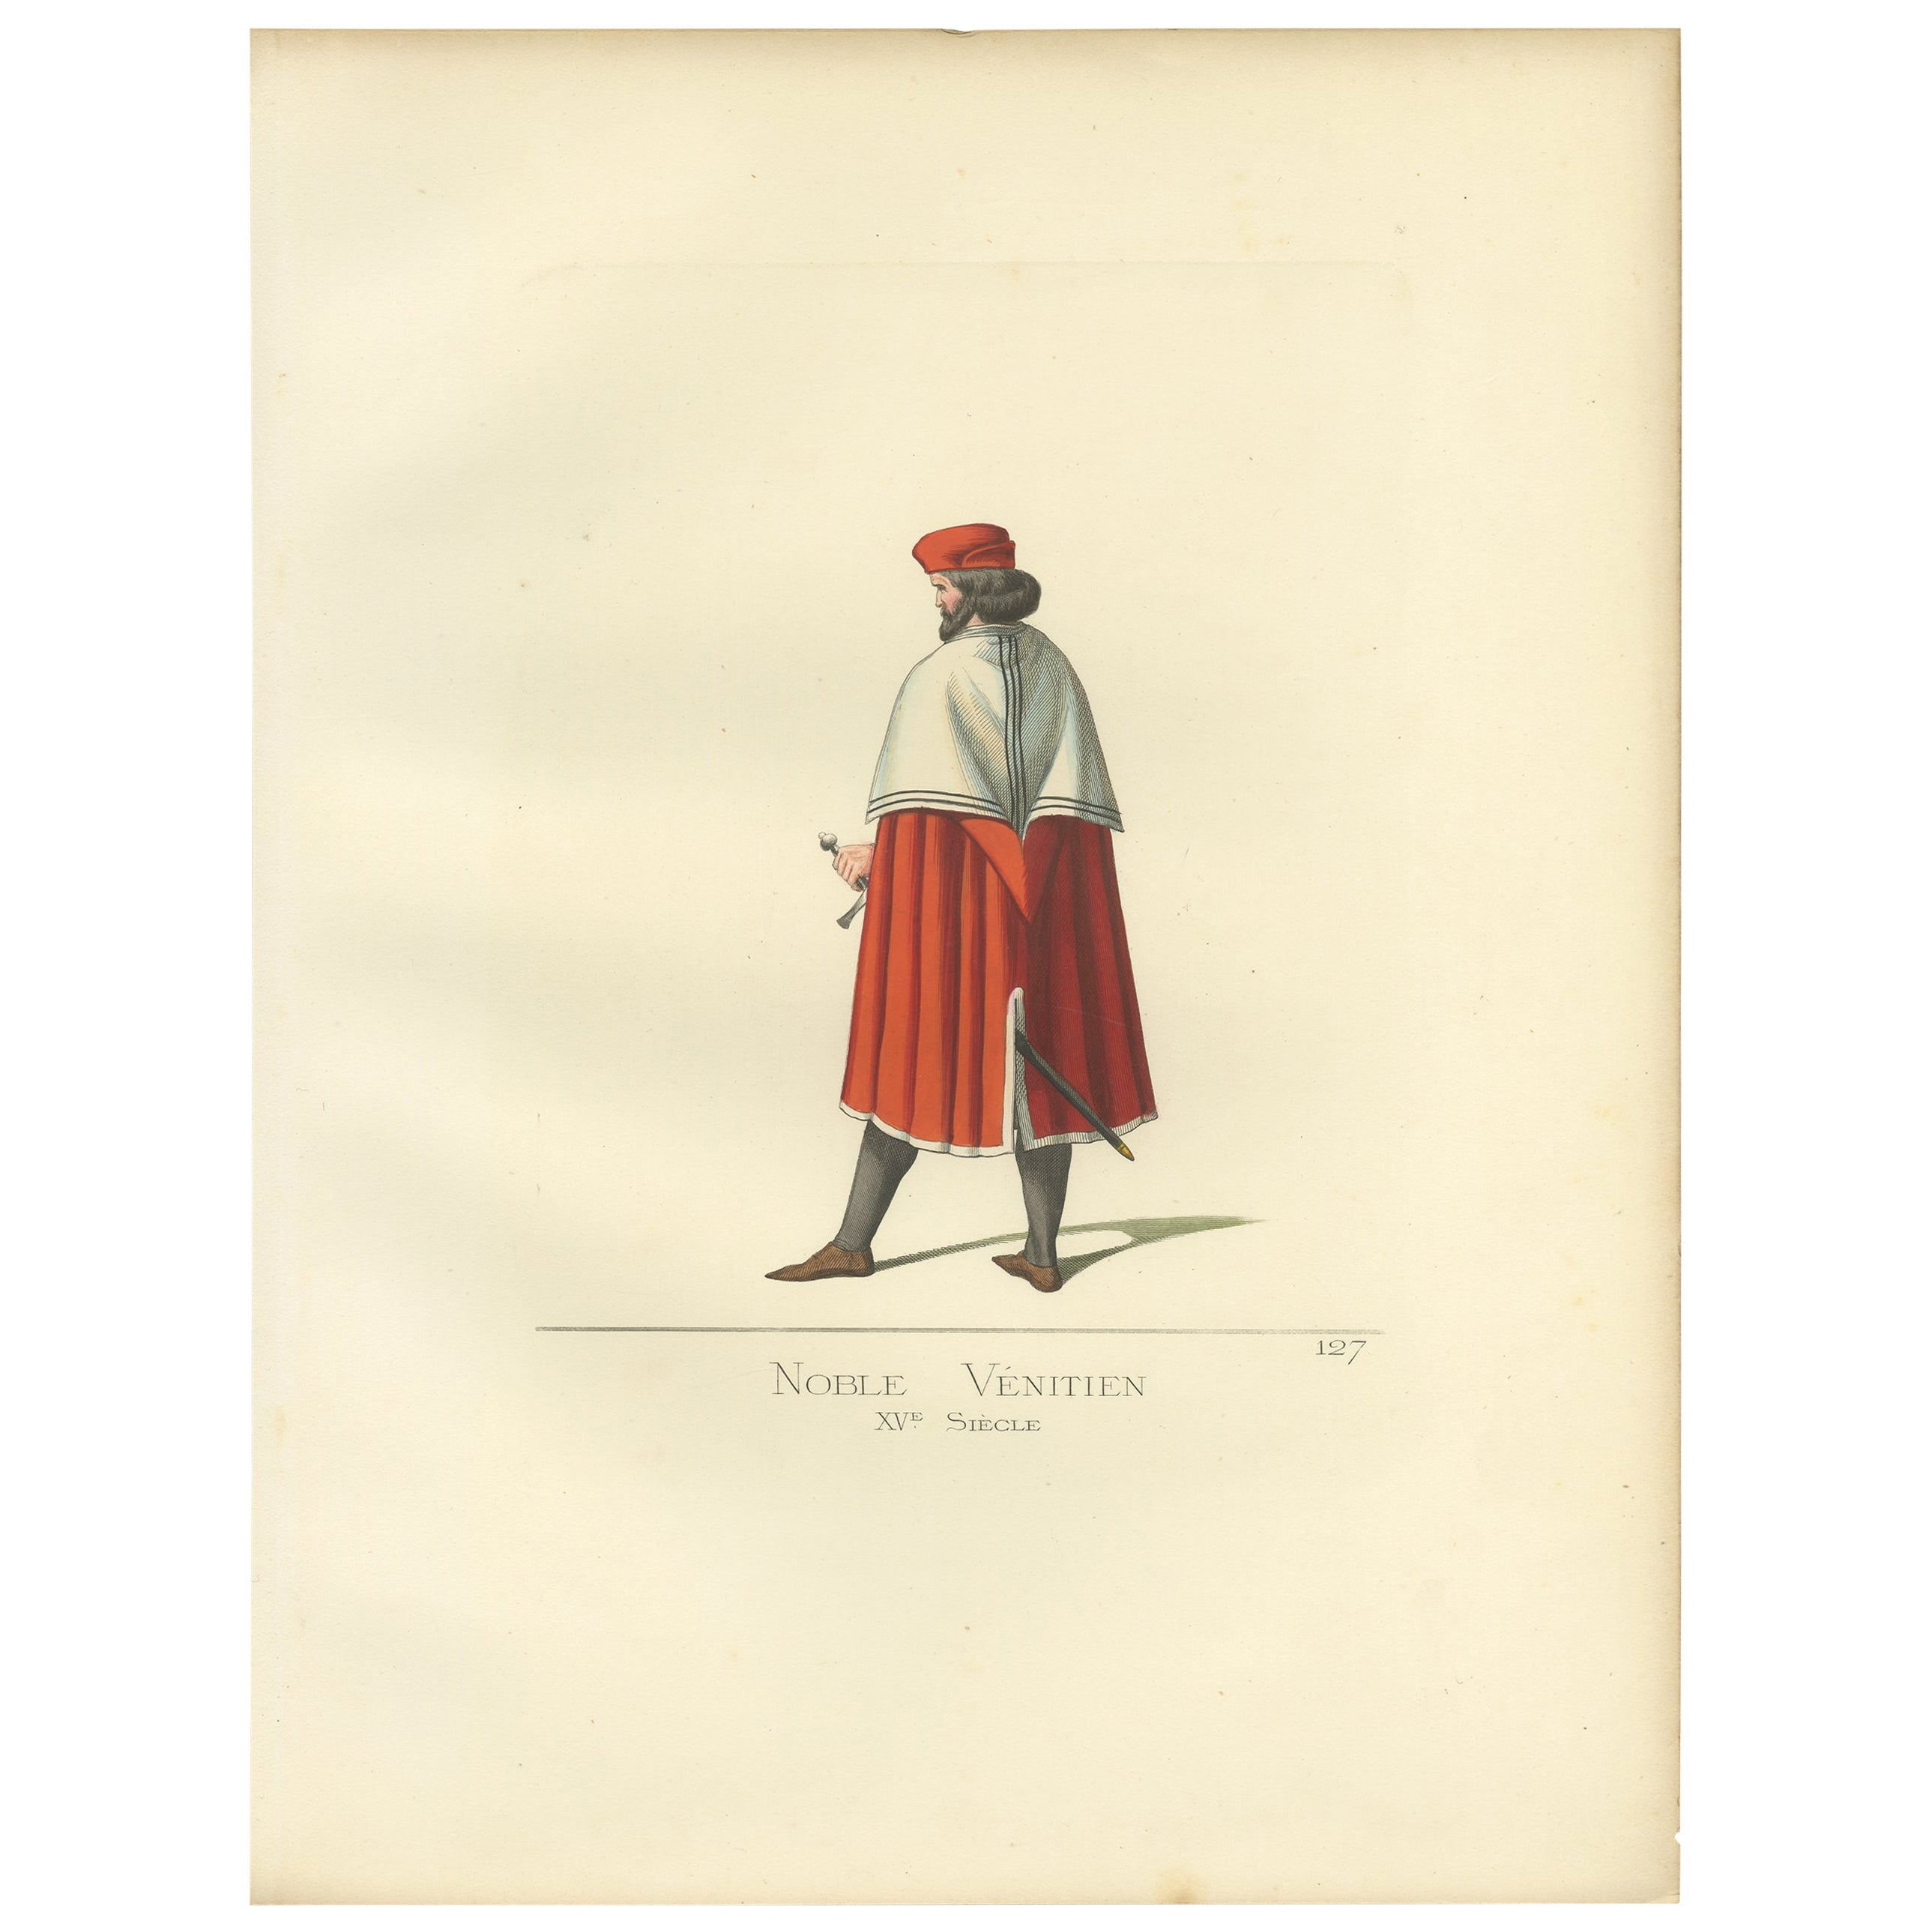 Antique Print of a Venetian Nobleman, Italy, 15th Century, by Bonnard, 1860